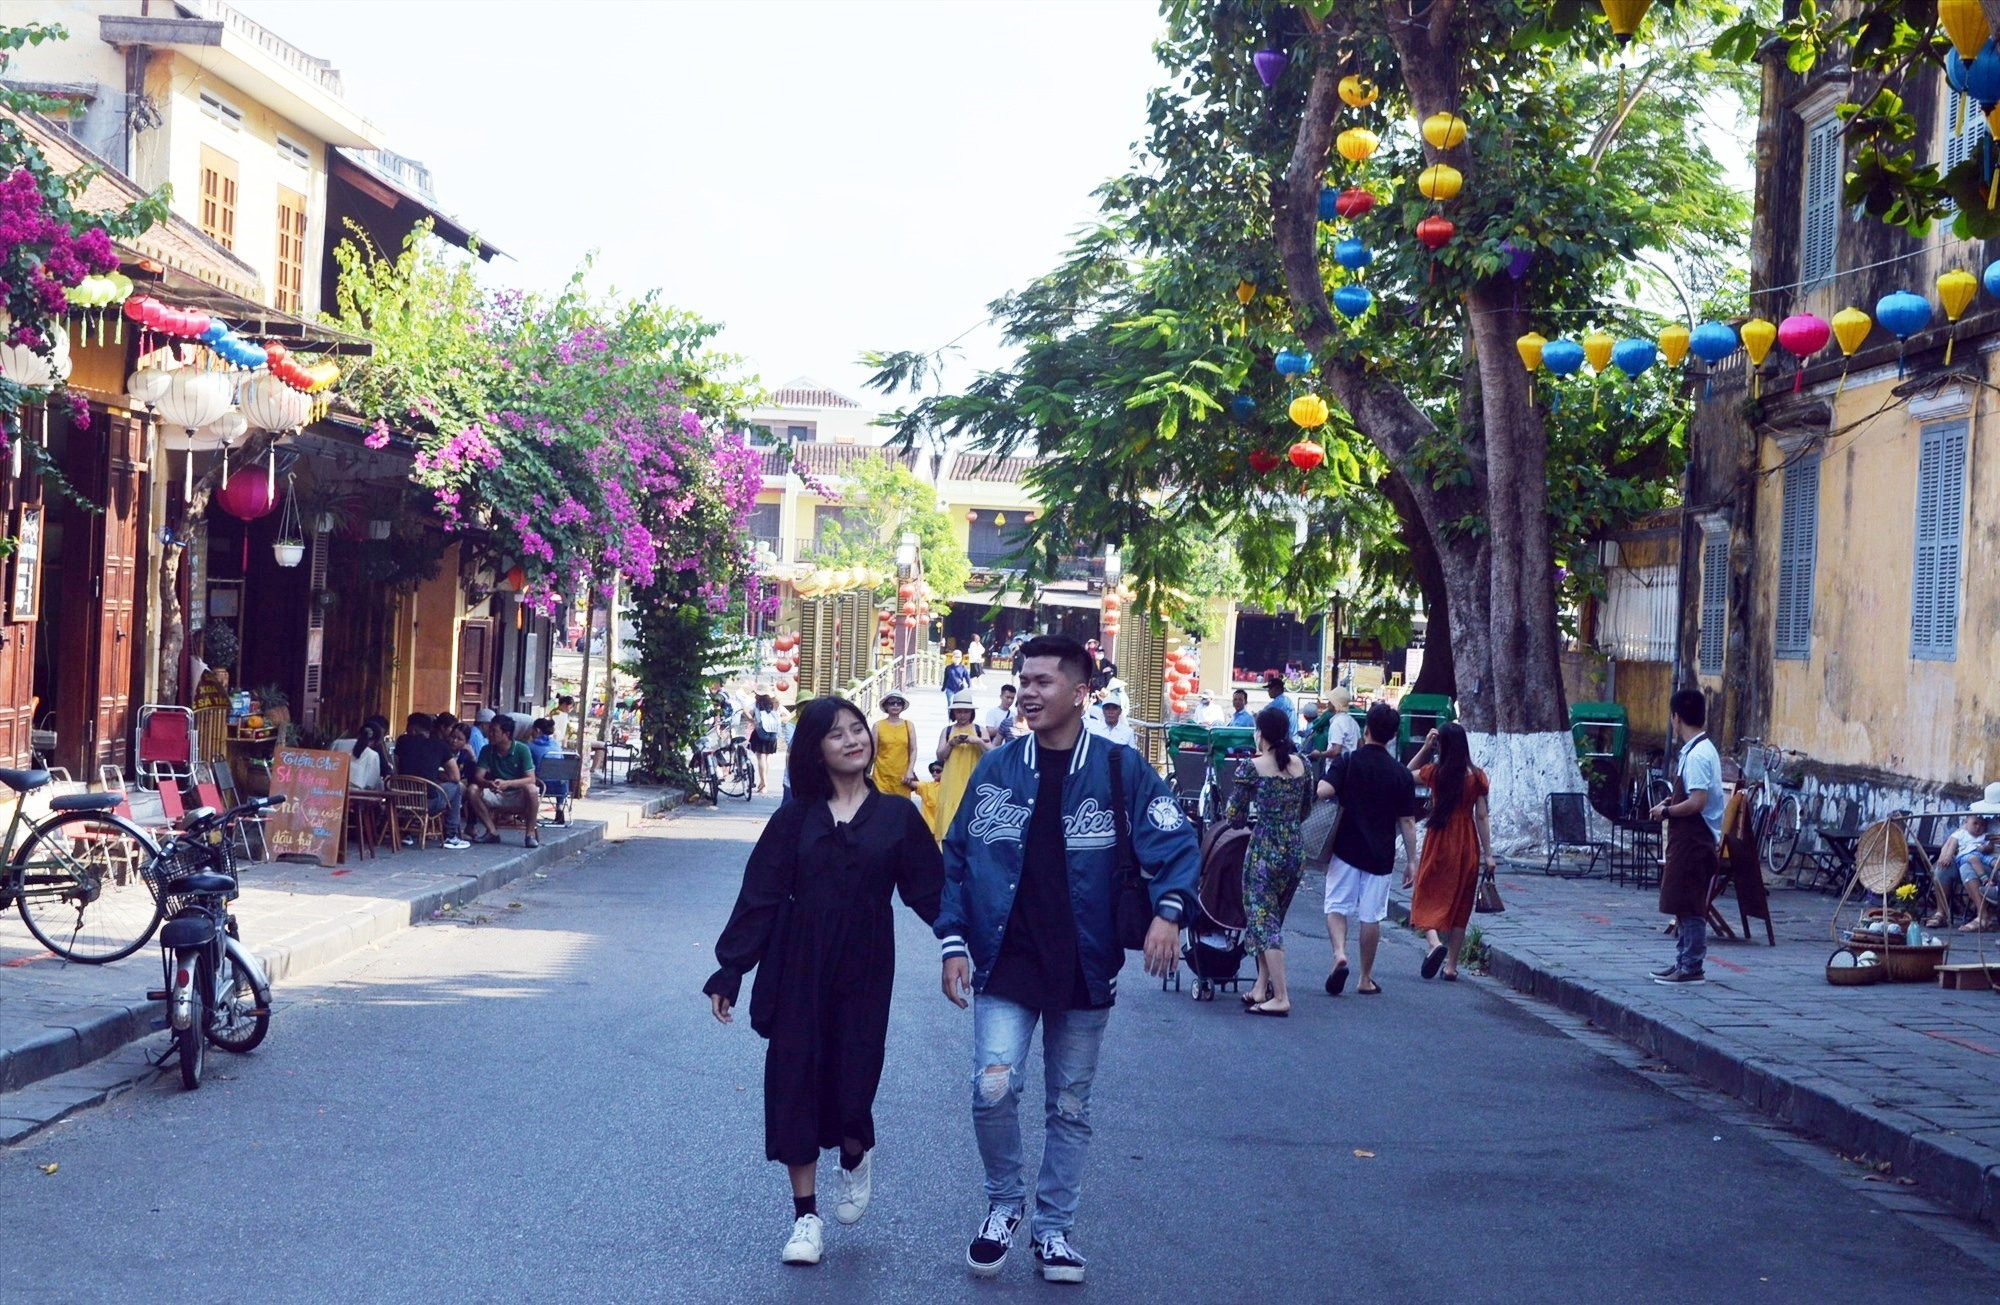 Tourists in Hoi An city